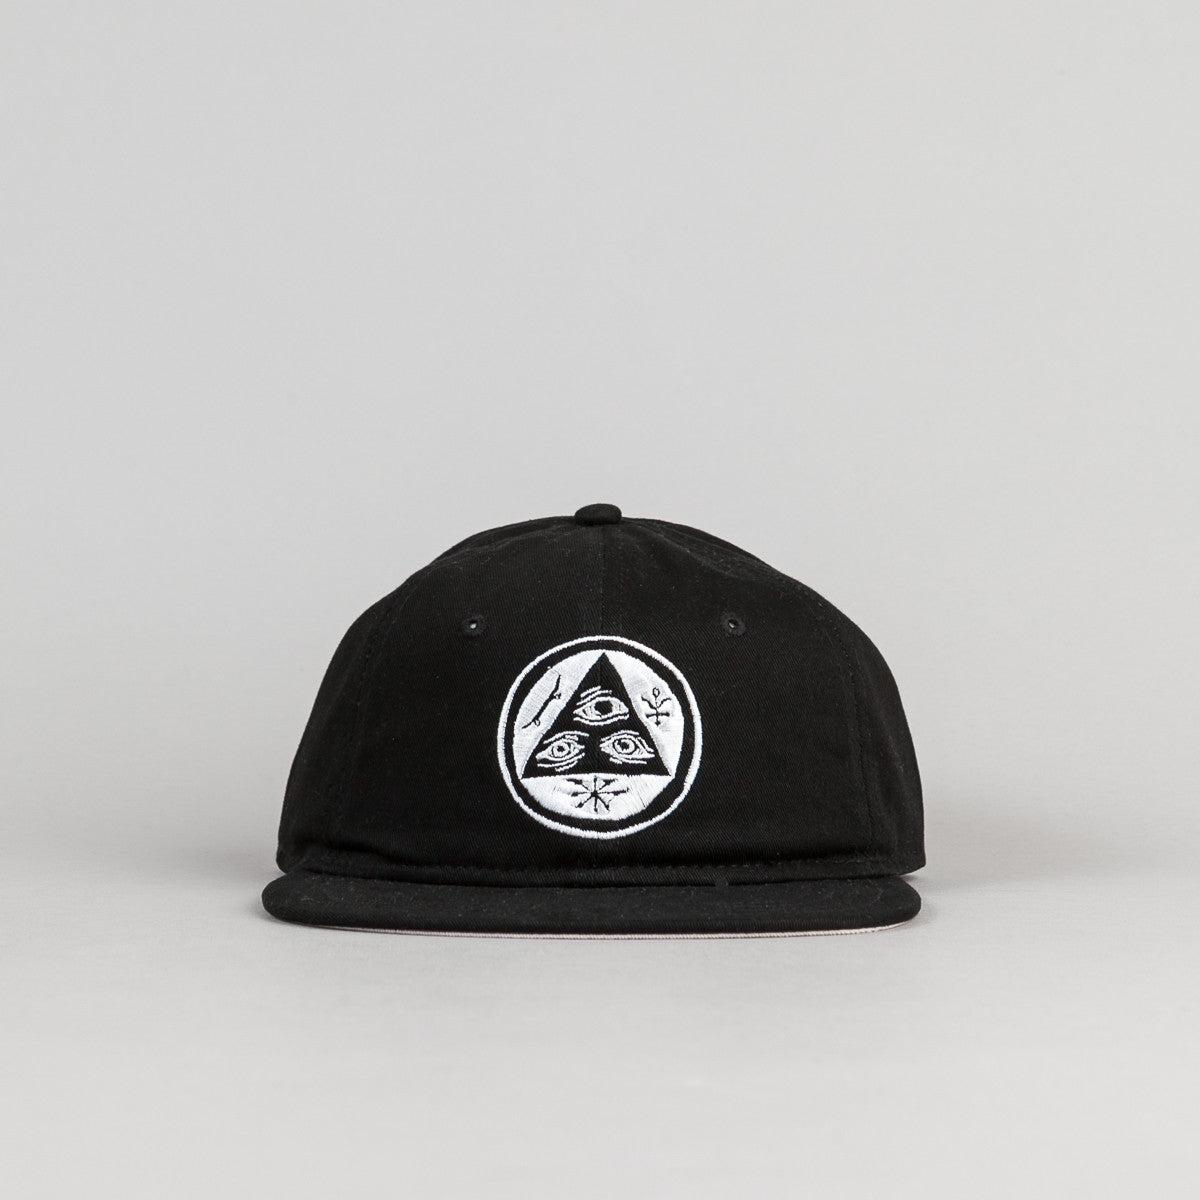 Welcome Skateboards Talisman Unstructured Snapback Cap - Black / White